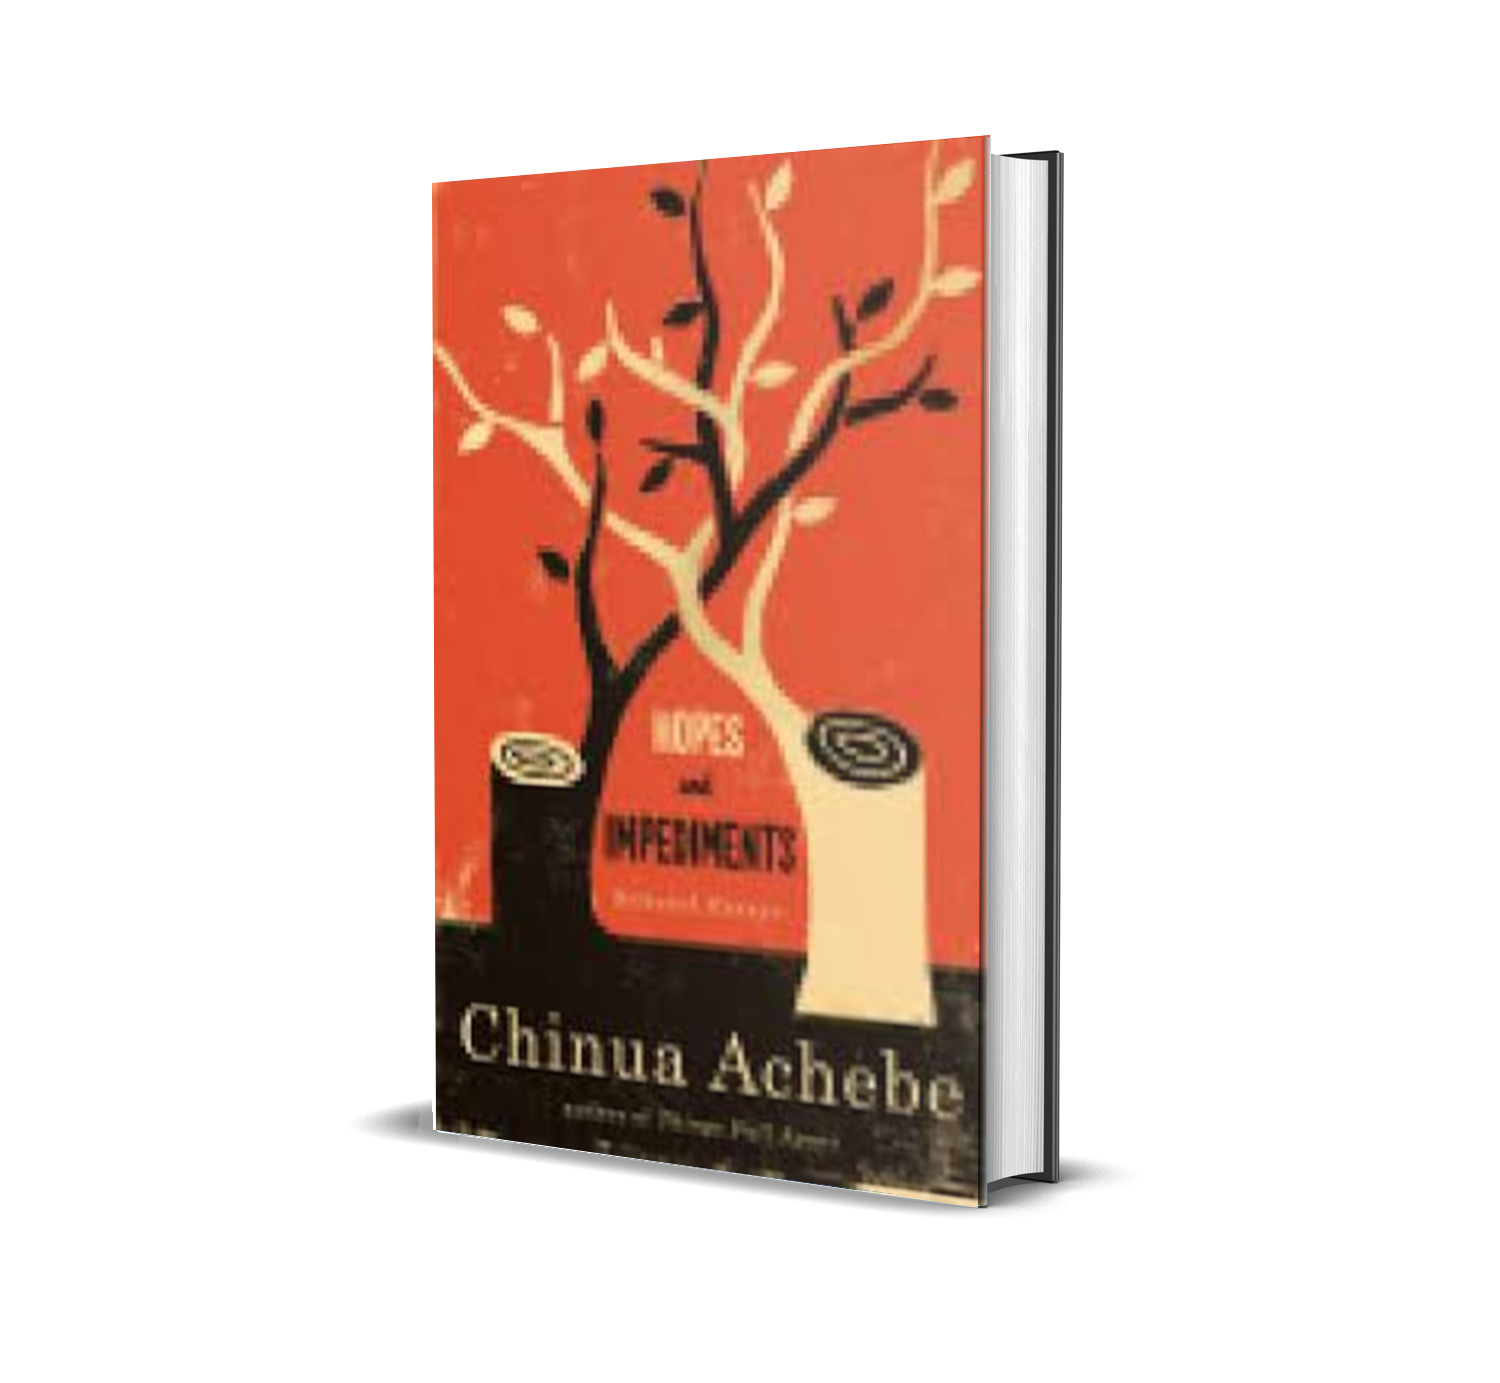 HOPES AND IMPEDIMENTS- chinua achebe